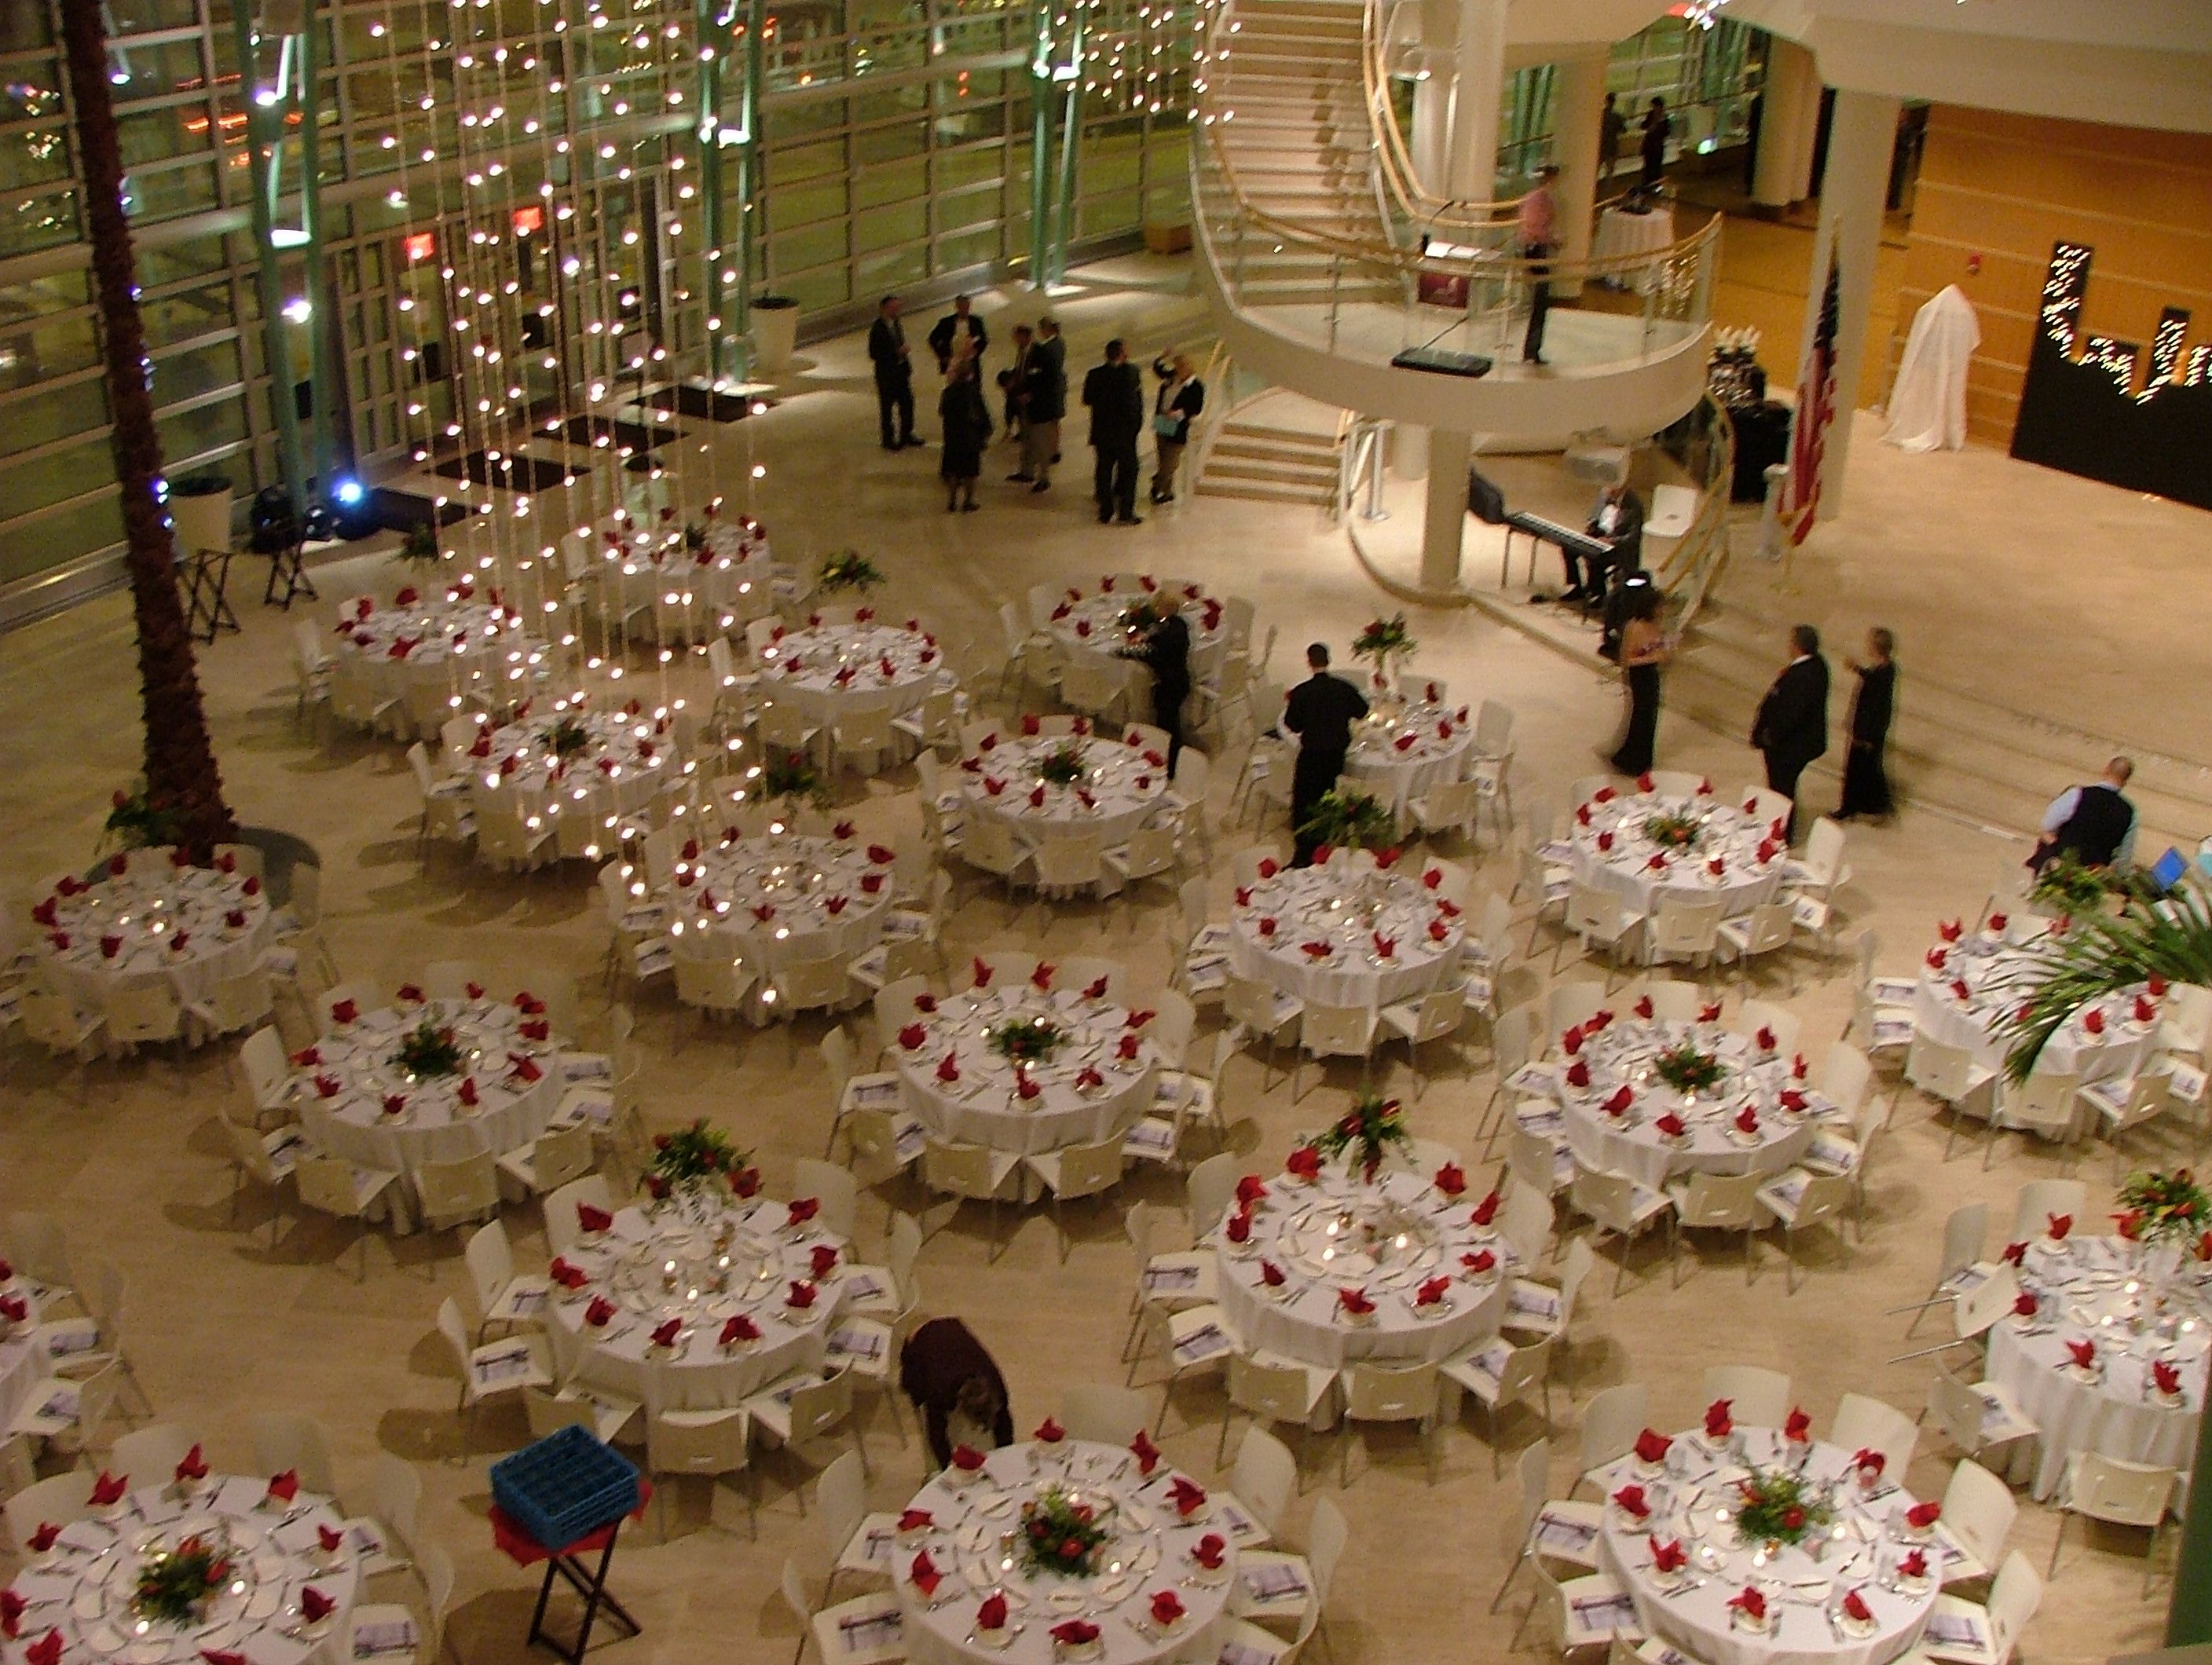 evening dinner in the wintergarden with holiday lights social